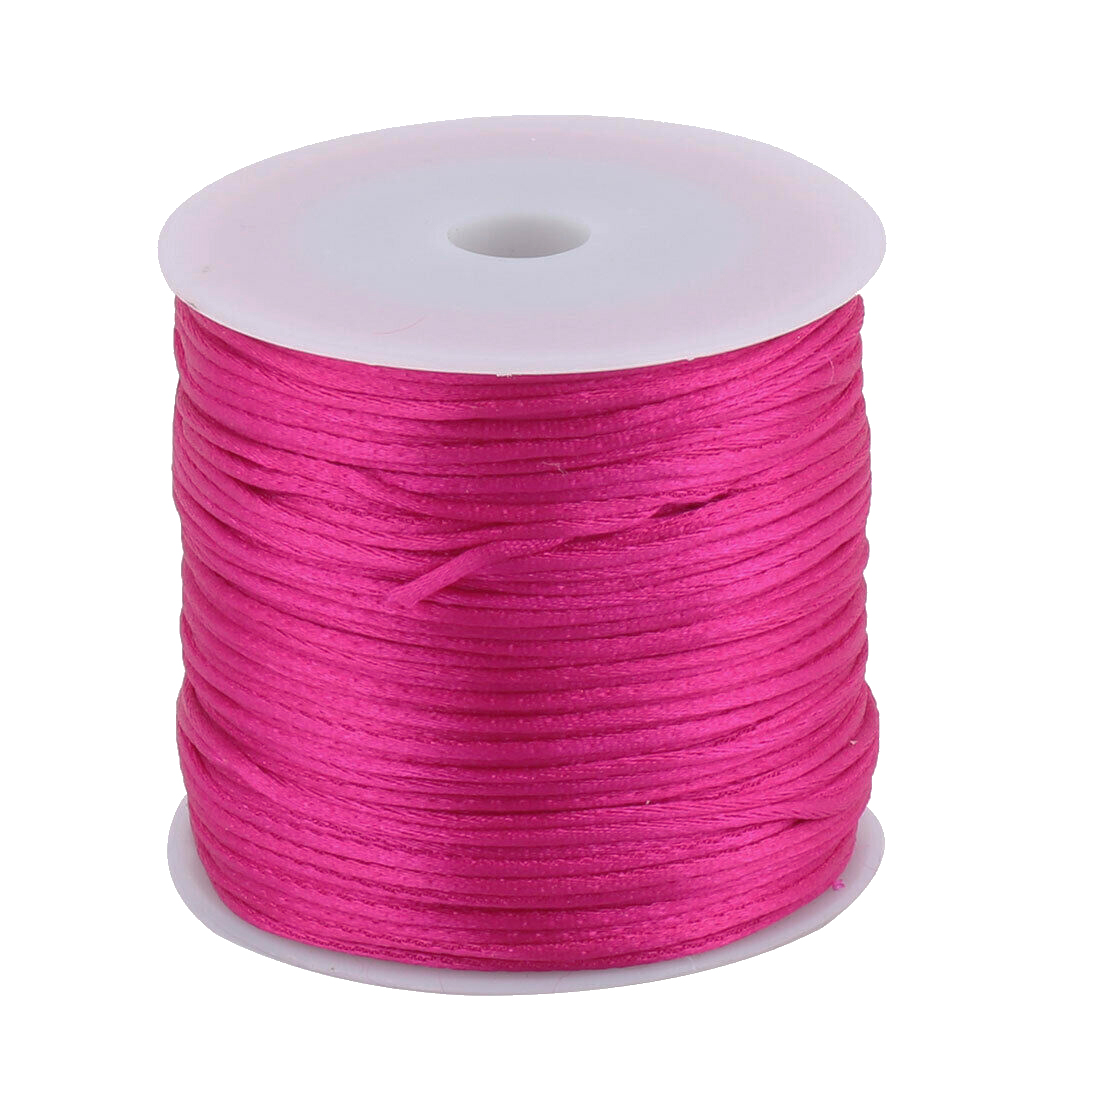 #1 Mousetail, 1.5mm Nylon cord, 76 yards (70m), Dark Rose